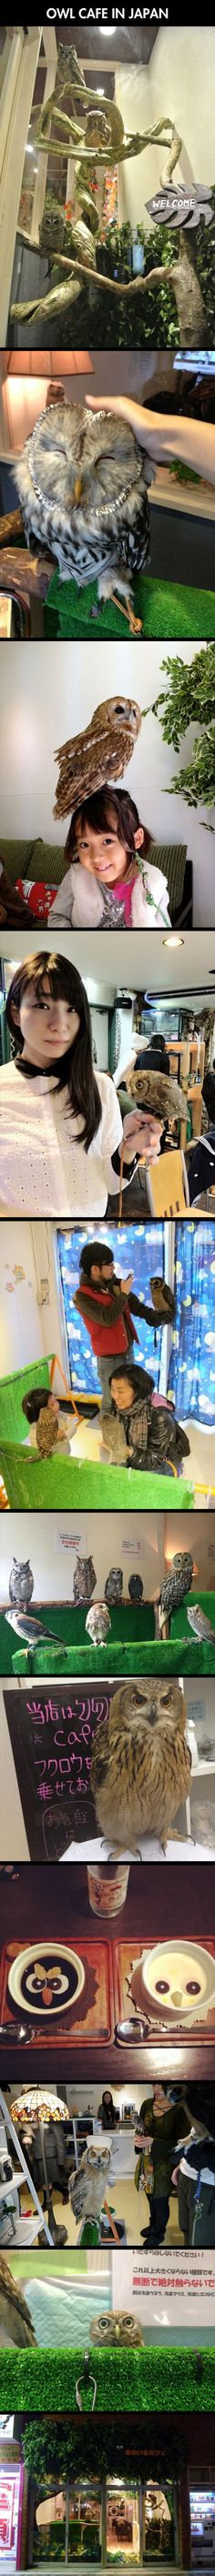 Japanese Owl Cafe just one more reason I need to go to Japan #TheHugLife